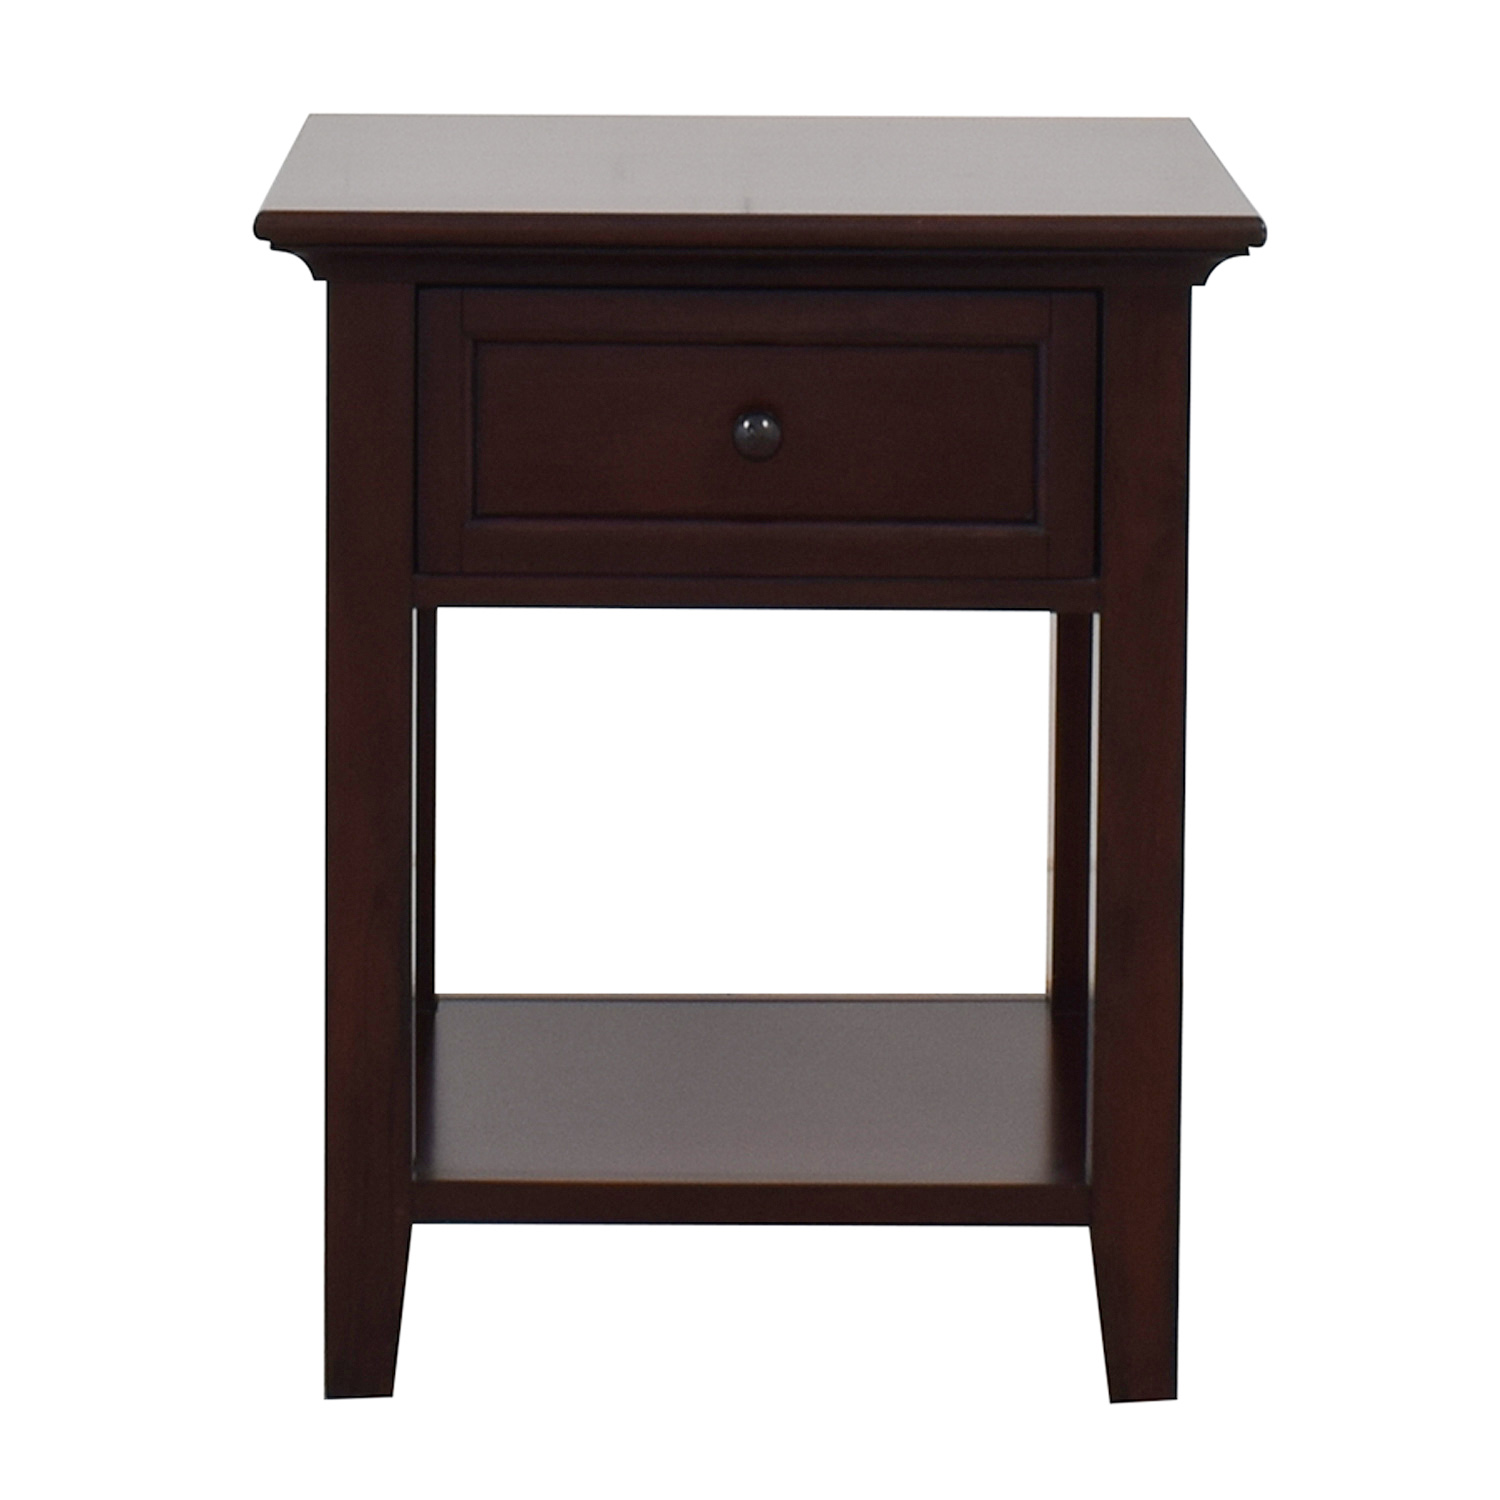 Pottery Barn Pottery Barn Hudson One-Drawer Nightstand nyc